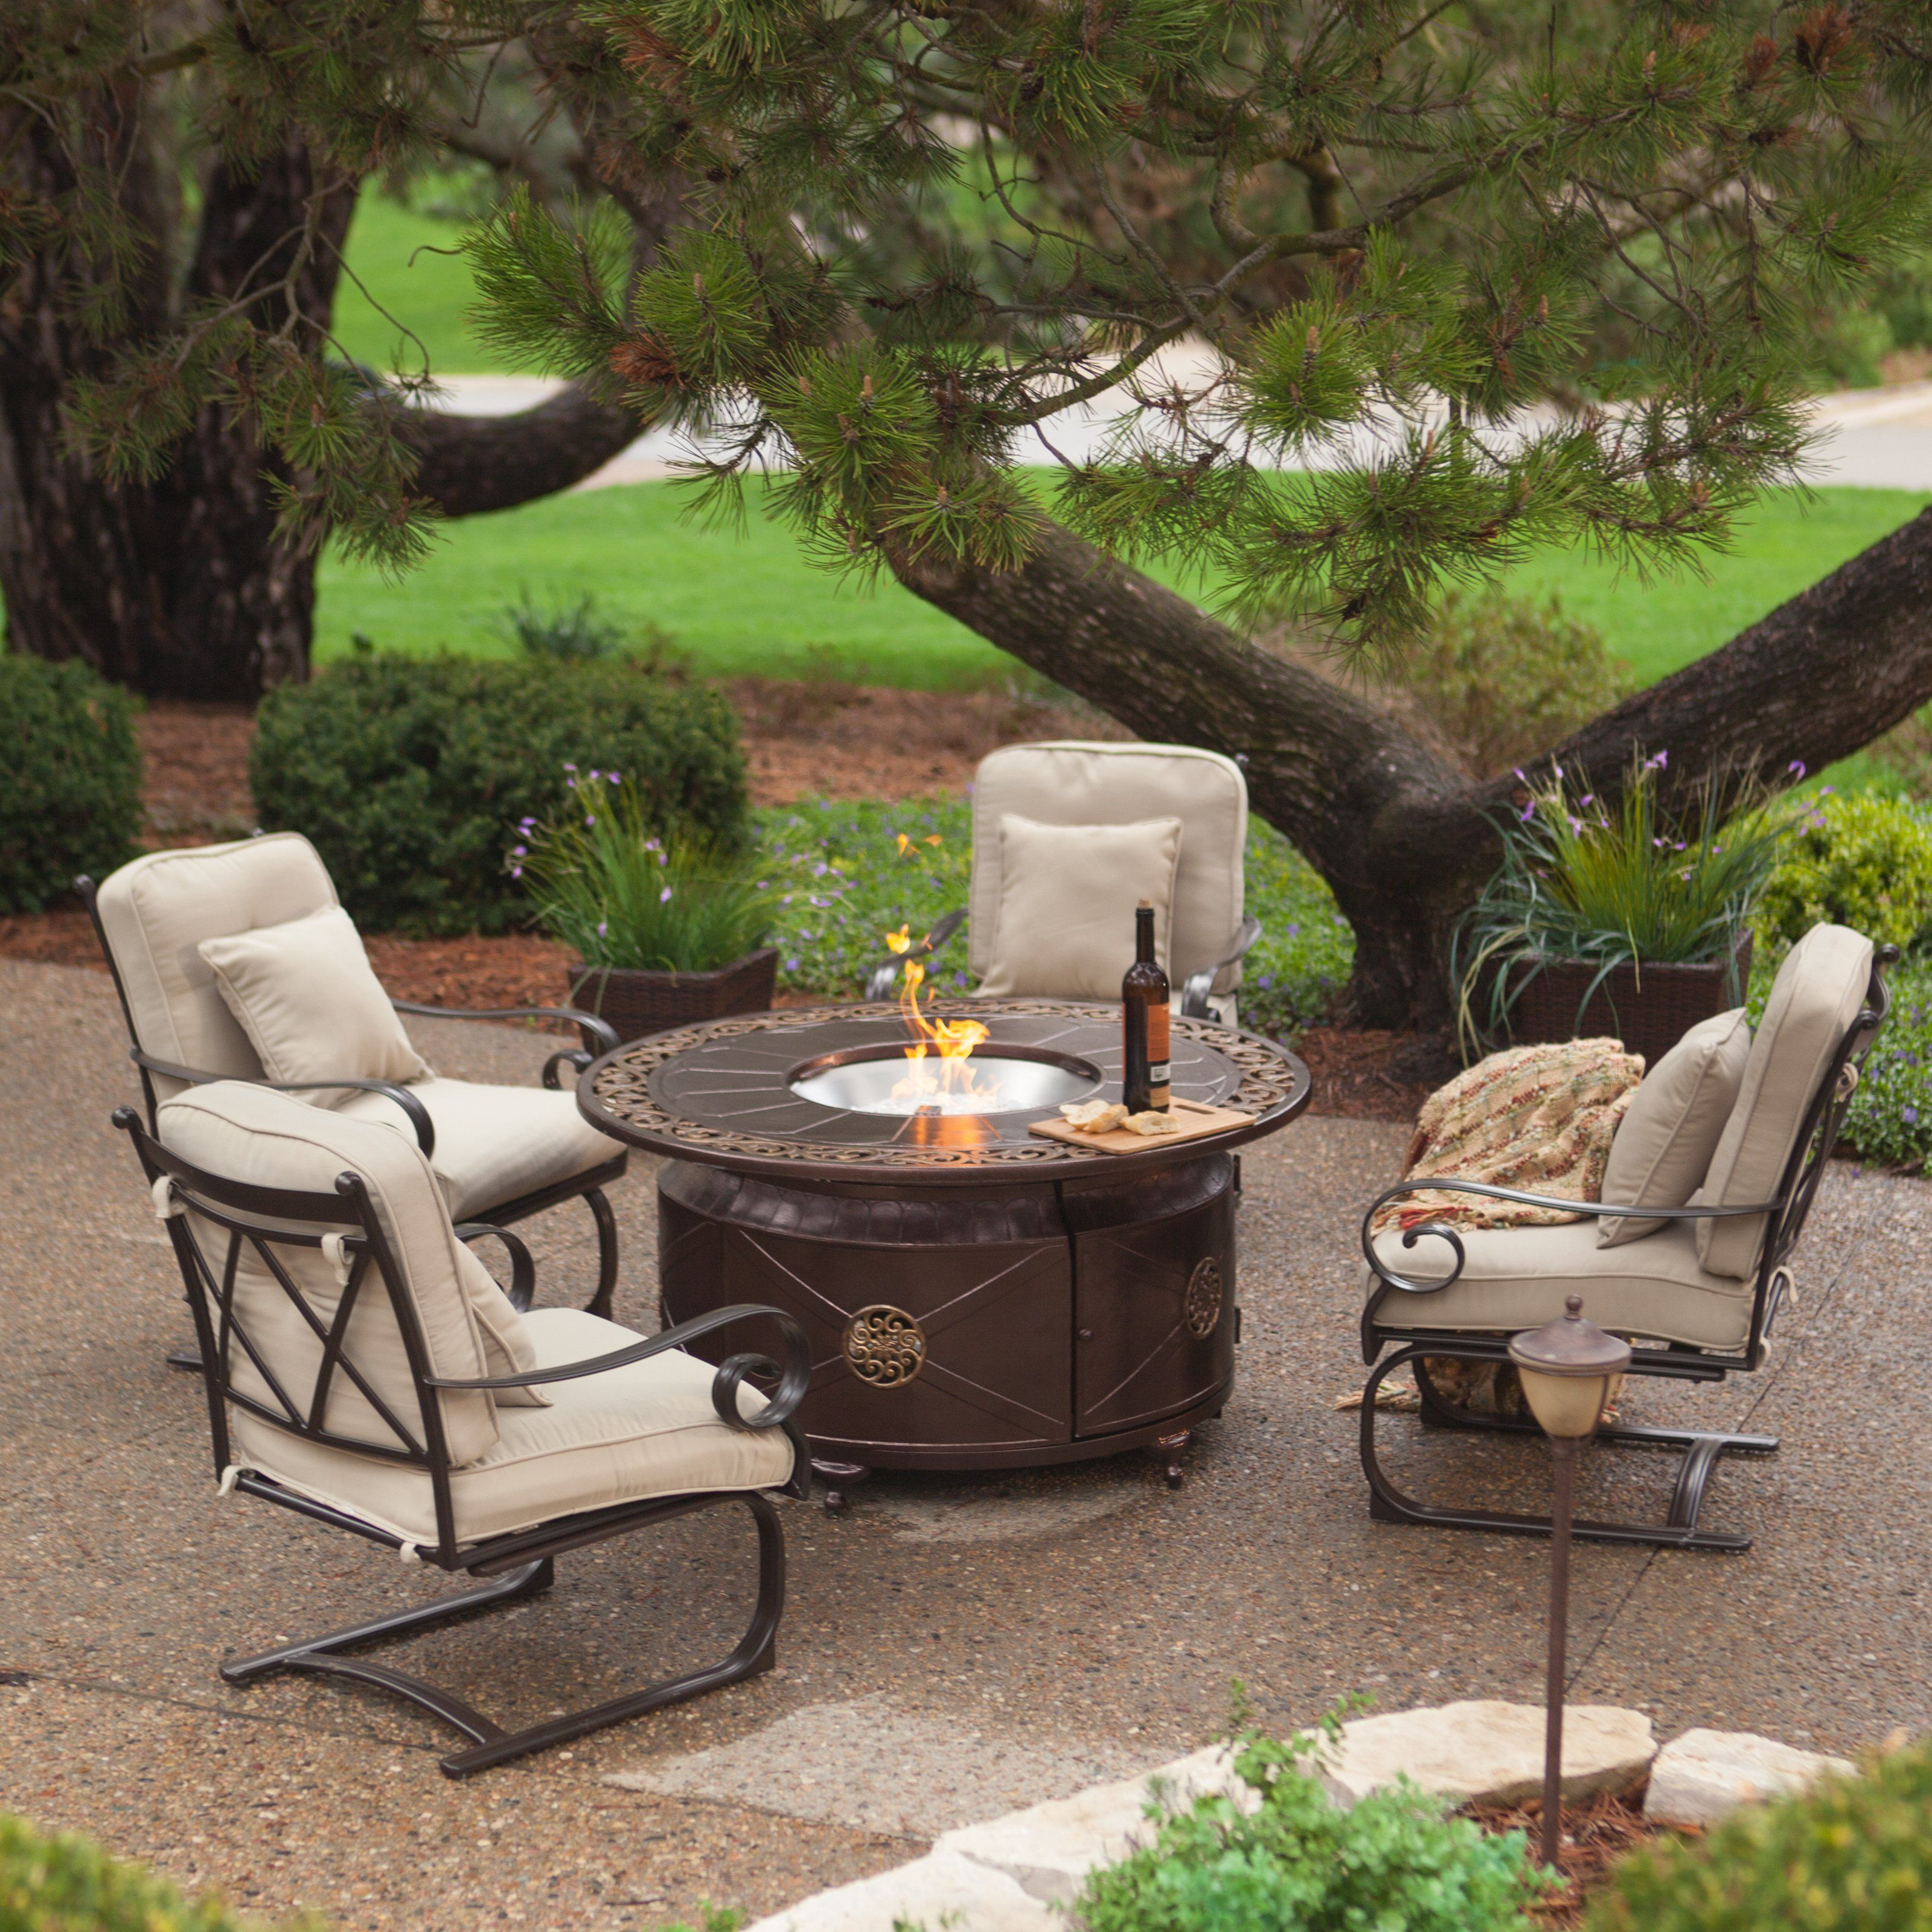 Have To Have It Az Heater 48 In Round Propane Fire Pit Veranda Chat Set Seats 4 1899 96 Cool Fire Pits Outdoor Patio Designs Round Propane Fire Pit